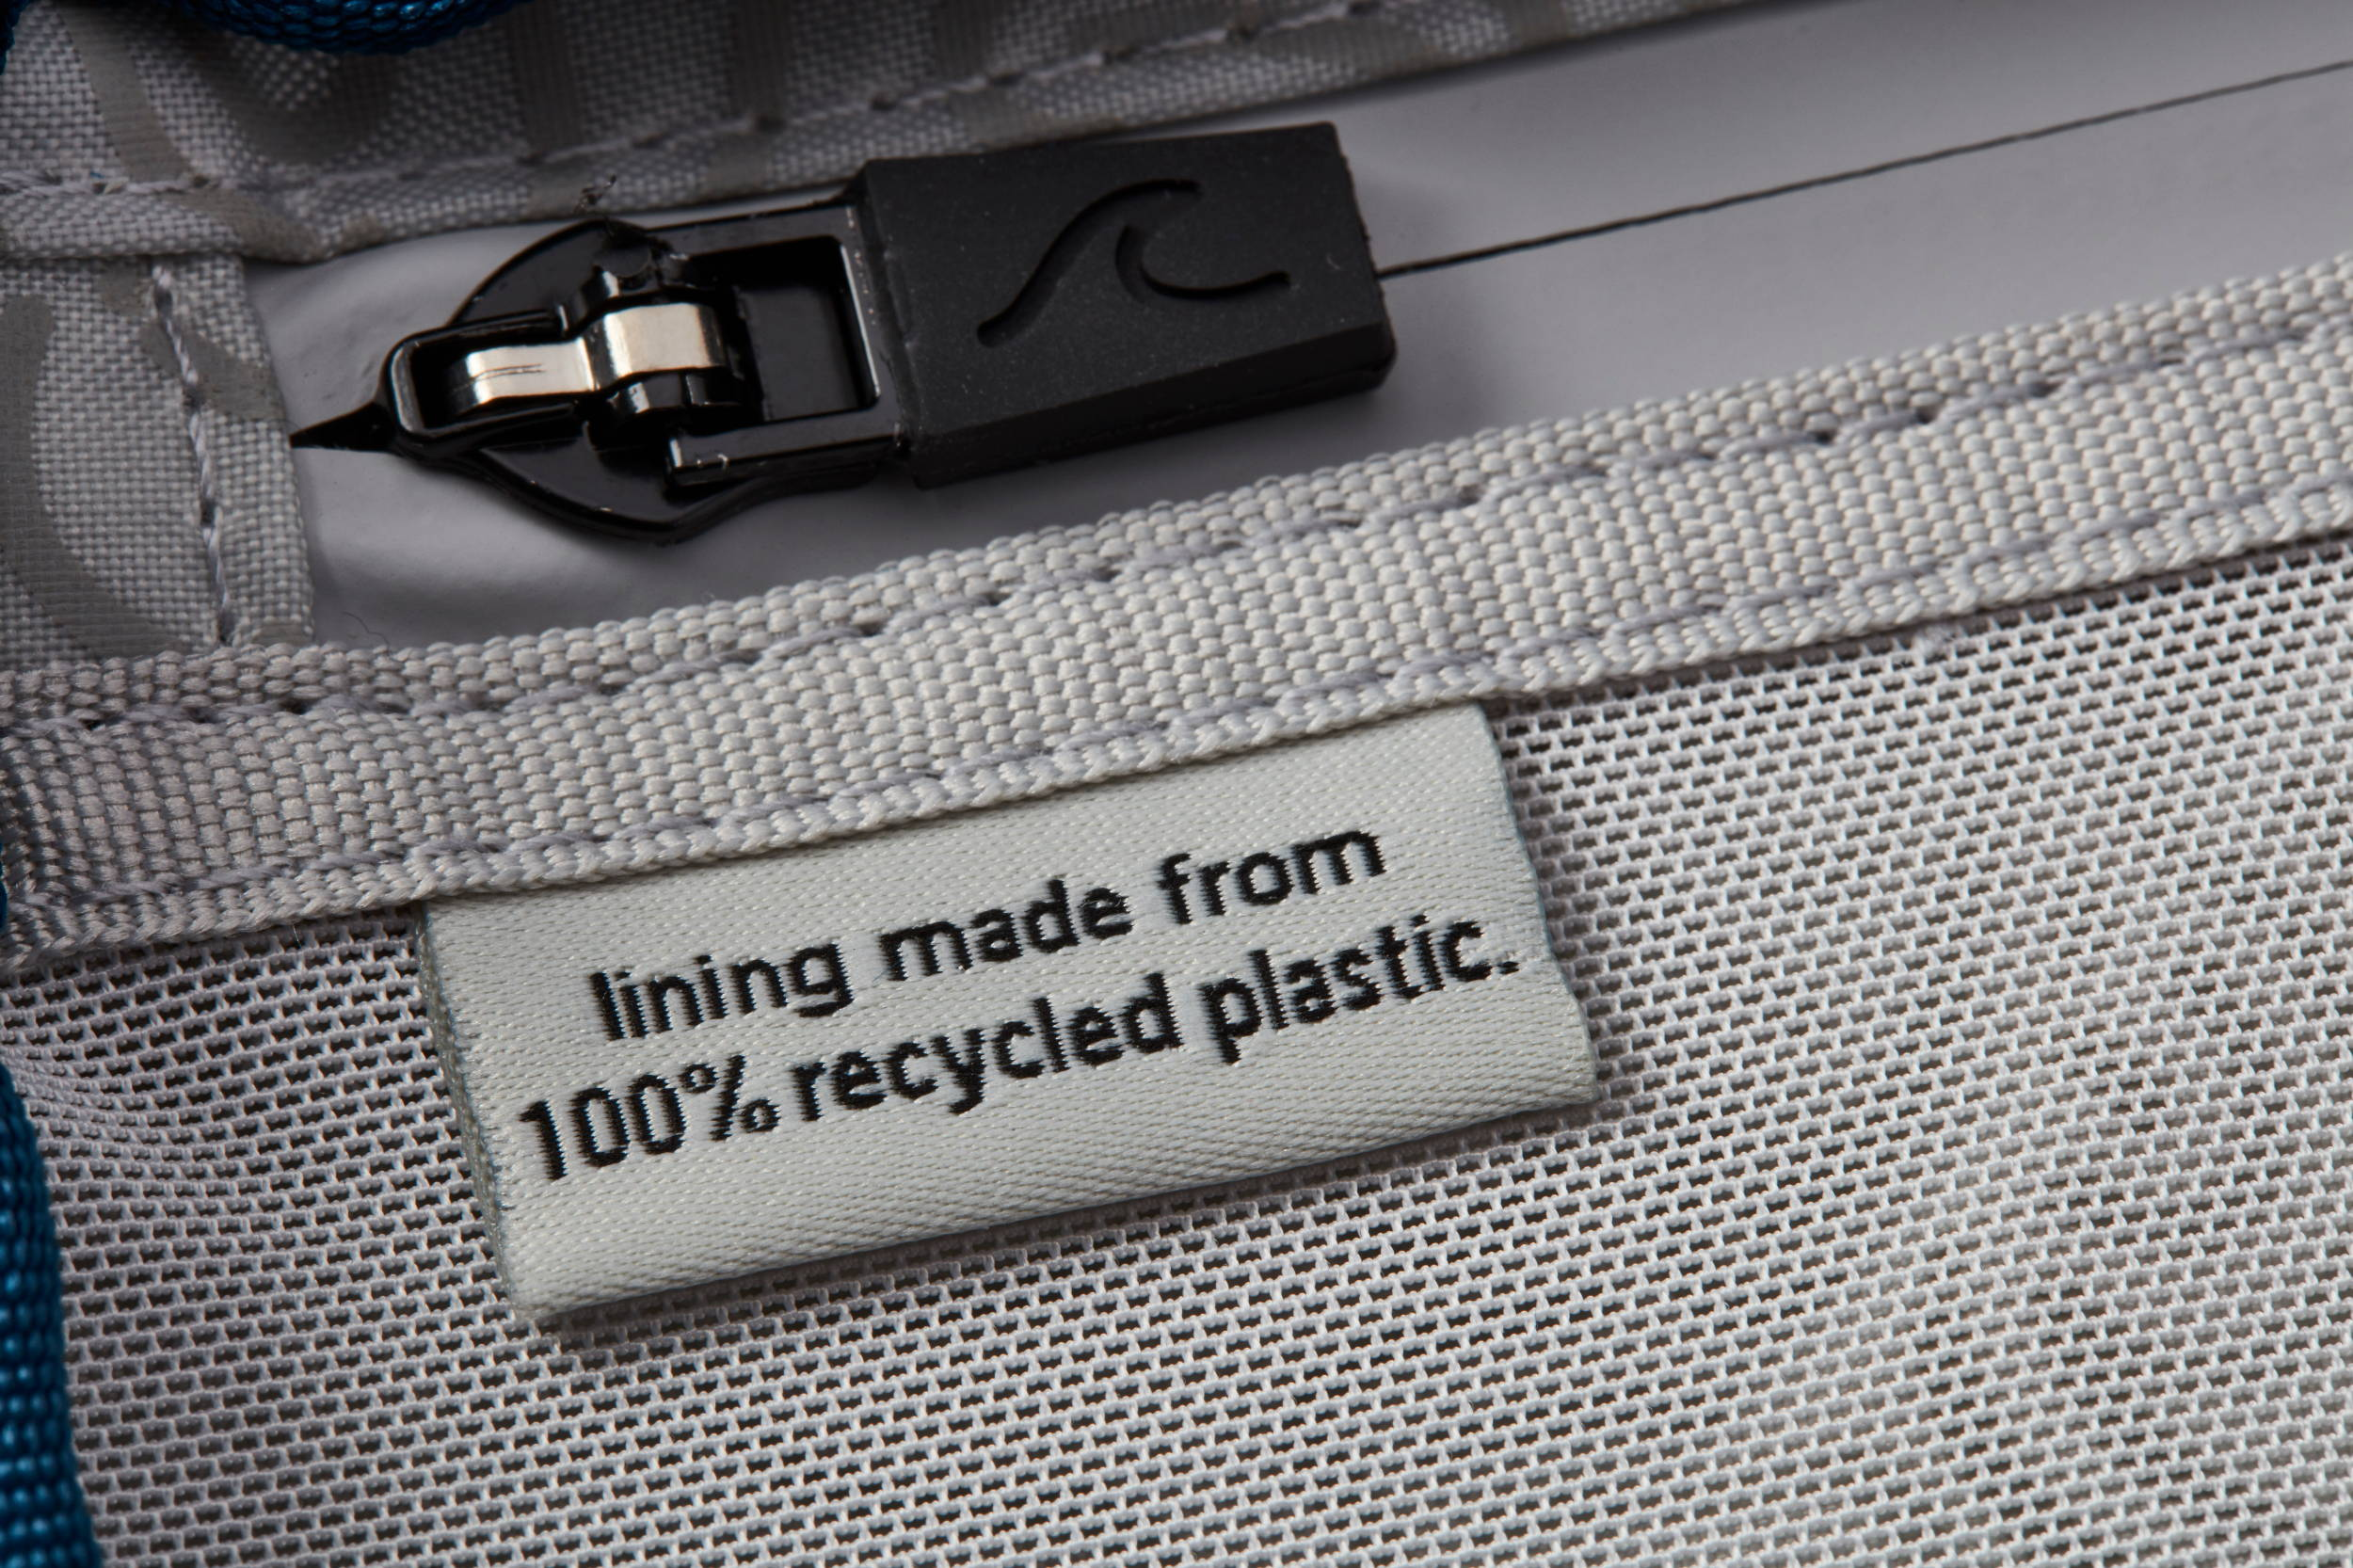 The lining of our OneNine5 wash bag is made from 100% recycled plastic (rPET)